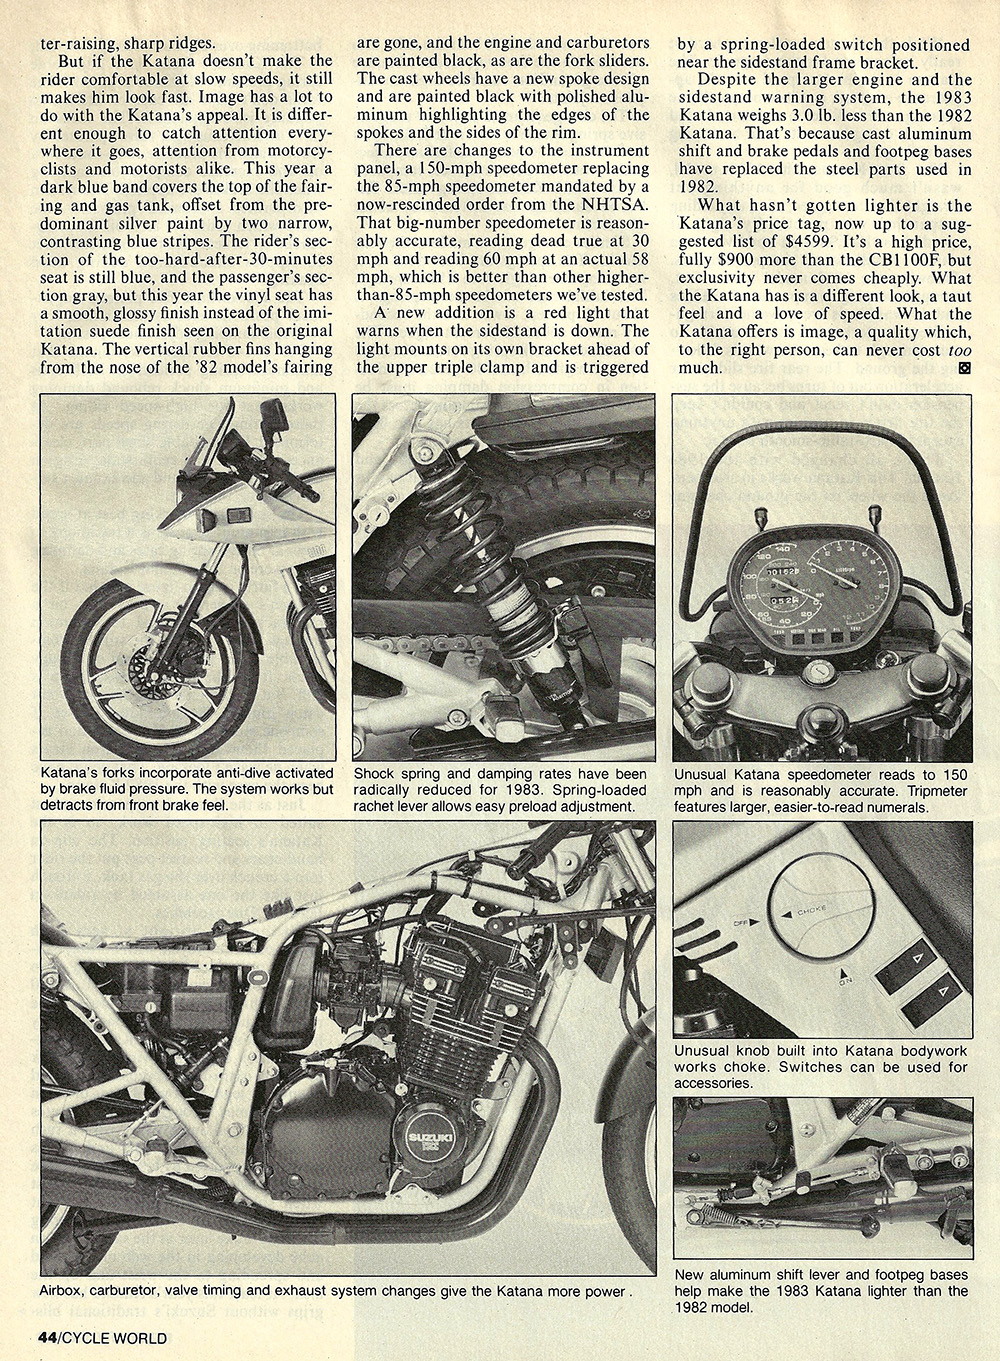 1983 Suzuki GS1100 S Katana road test 05.jpg